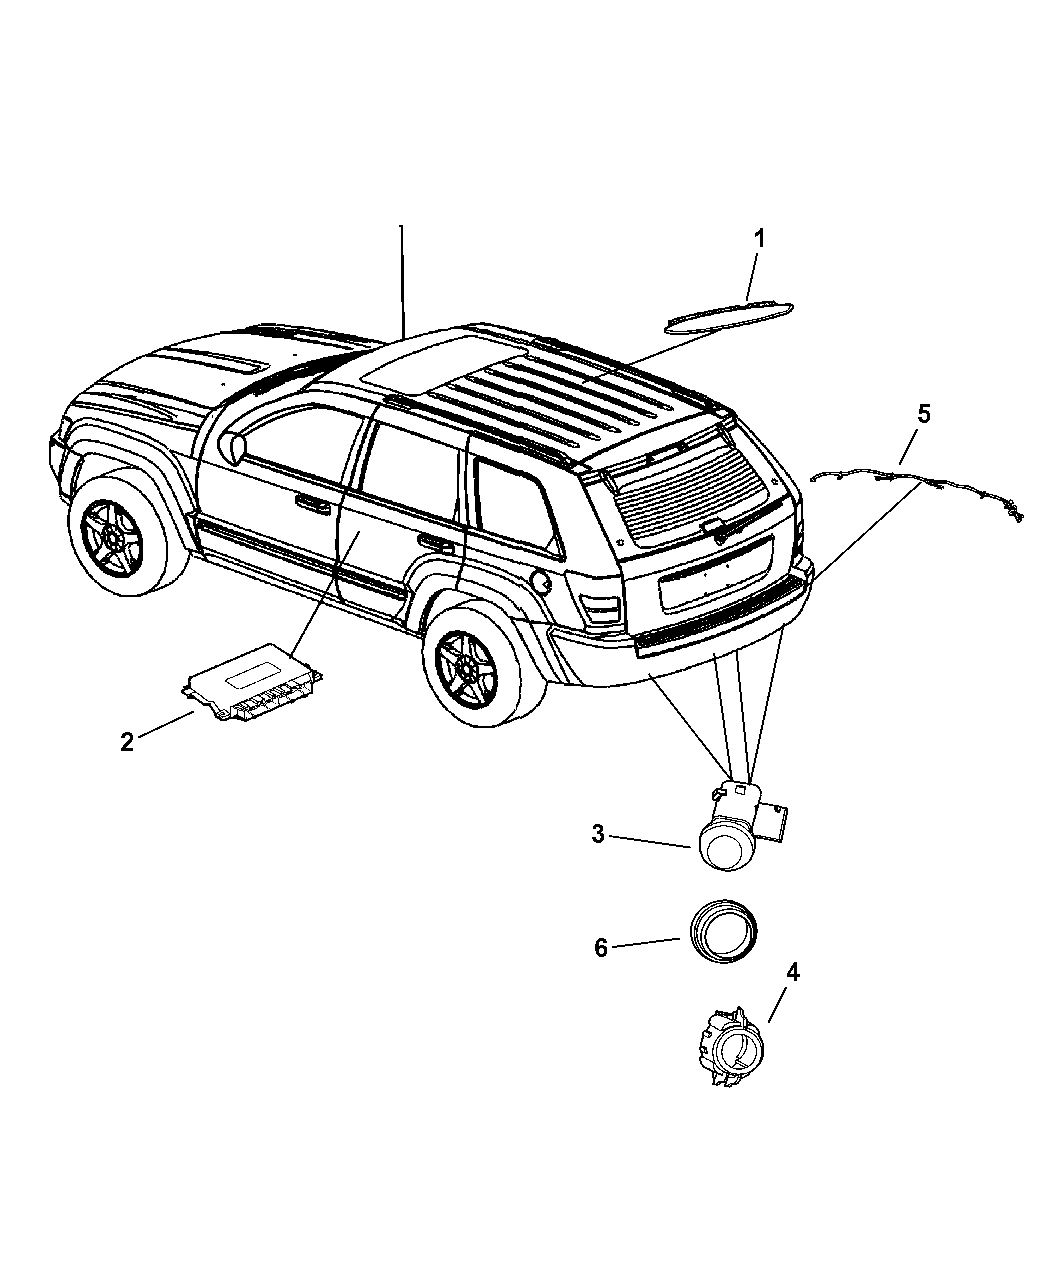 2007 Jeep Grand Cherokee Park Assist Detection System